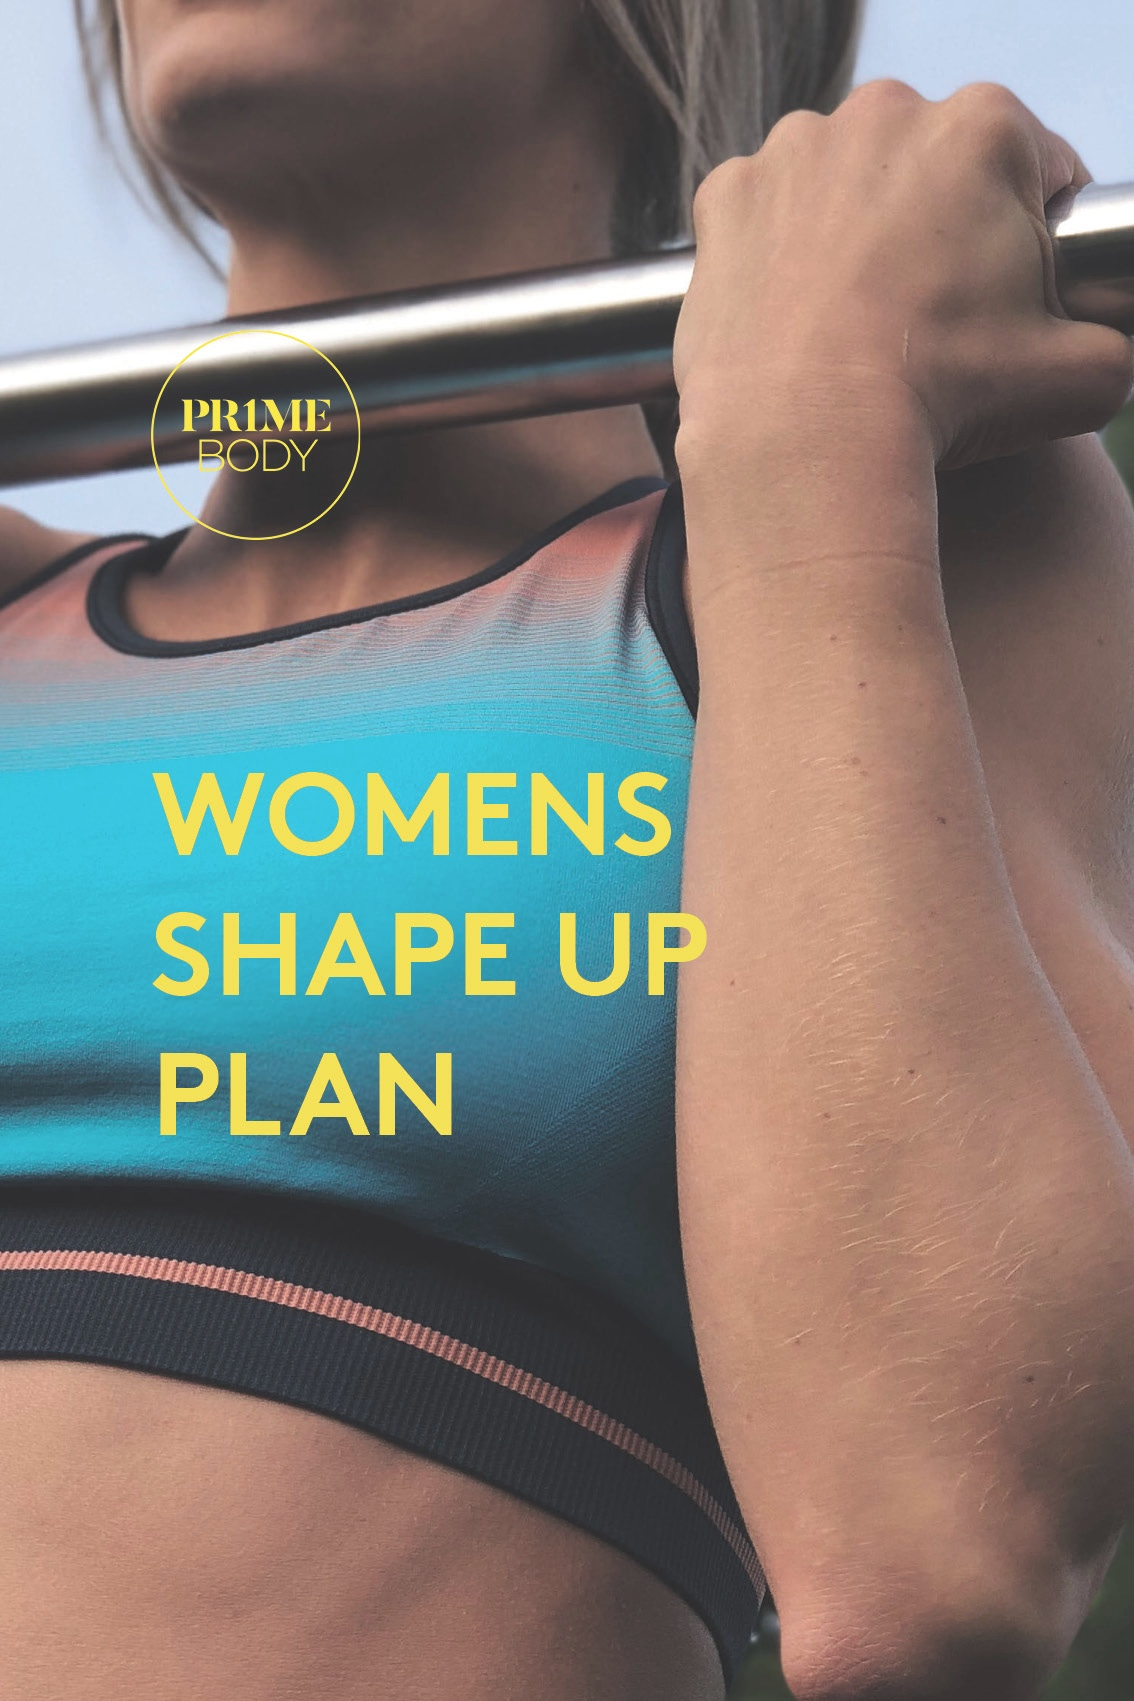 WOMEN'S 12 WEEK SHAPE UP